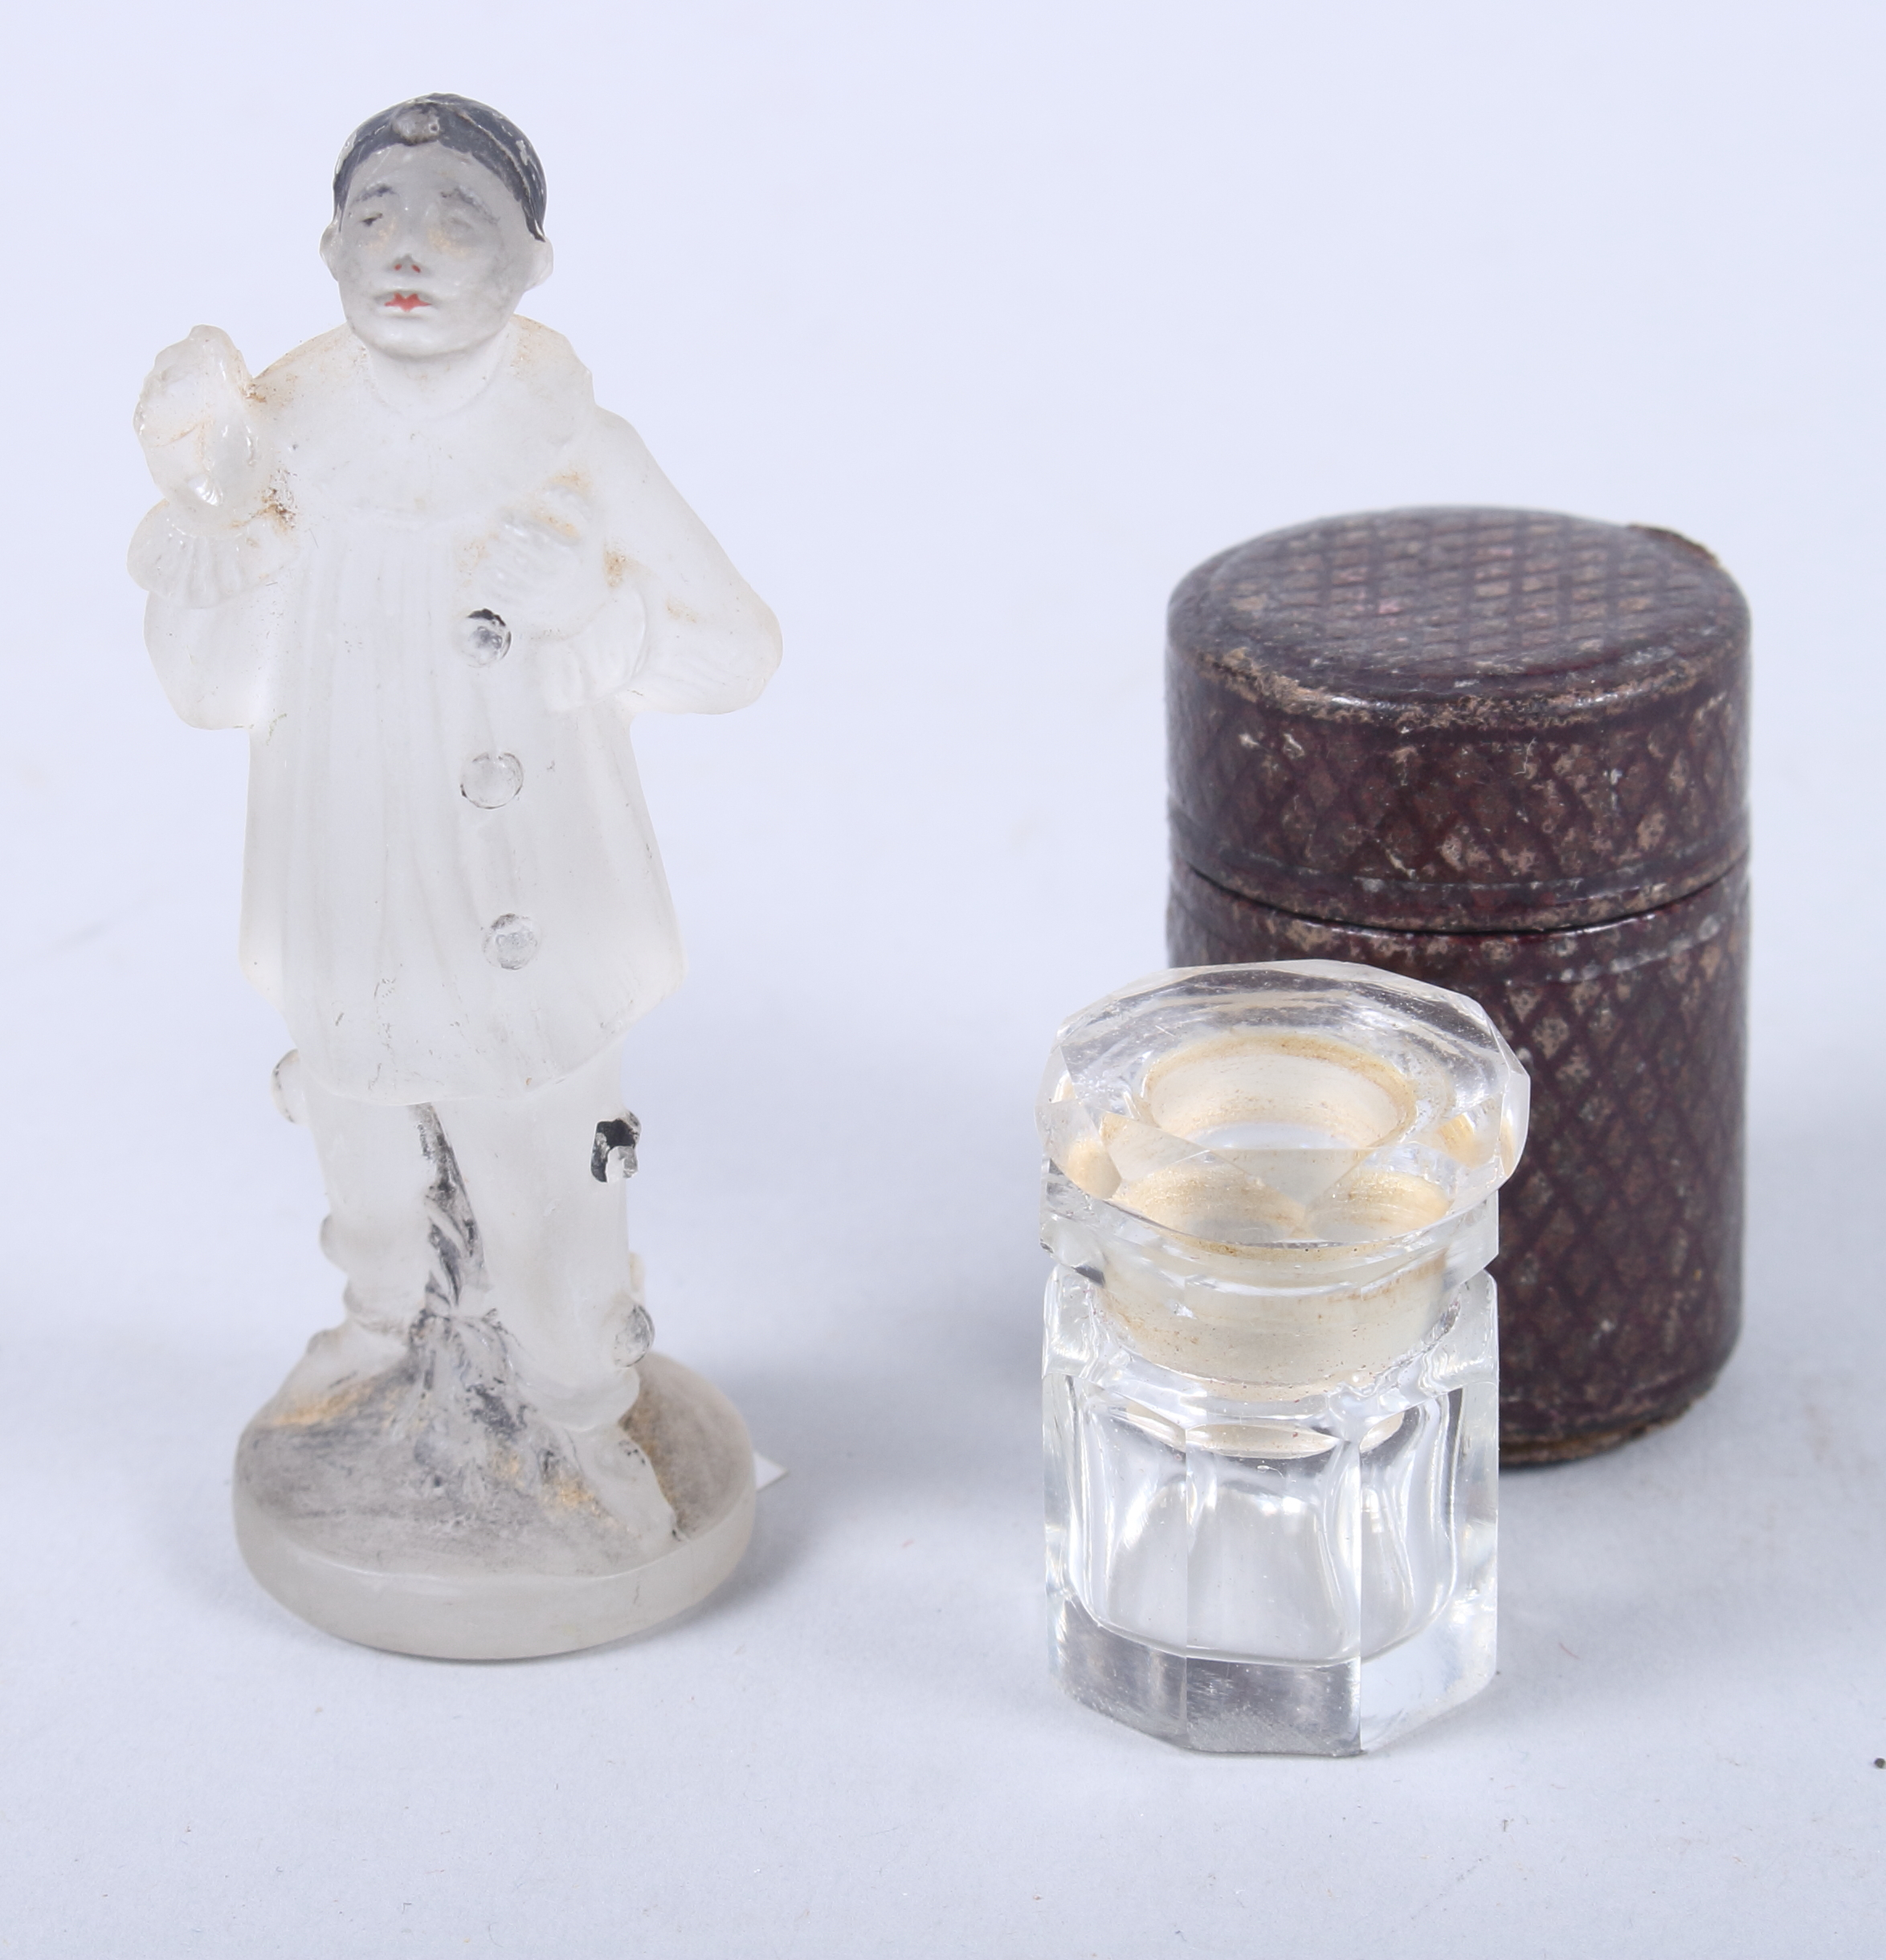 "Lot 35 - An Art Deco pressed glass figure of a Pierrot, 3"" high, and a 19th century cut glass vinaigrette /"